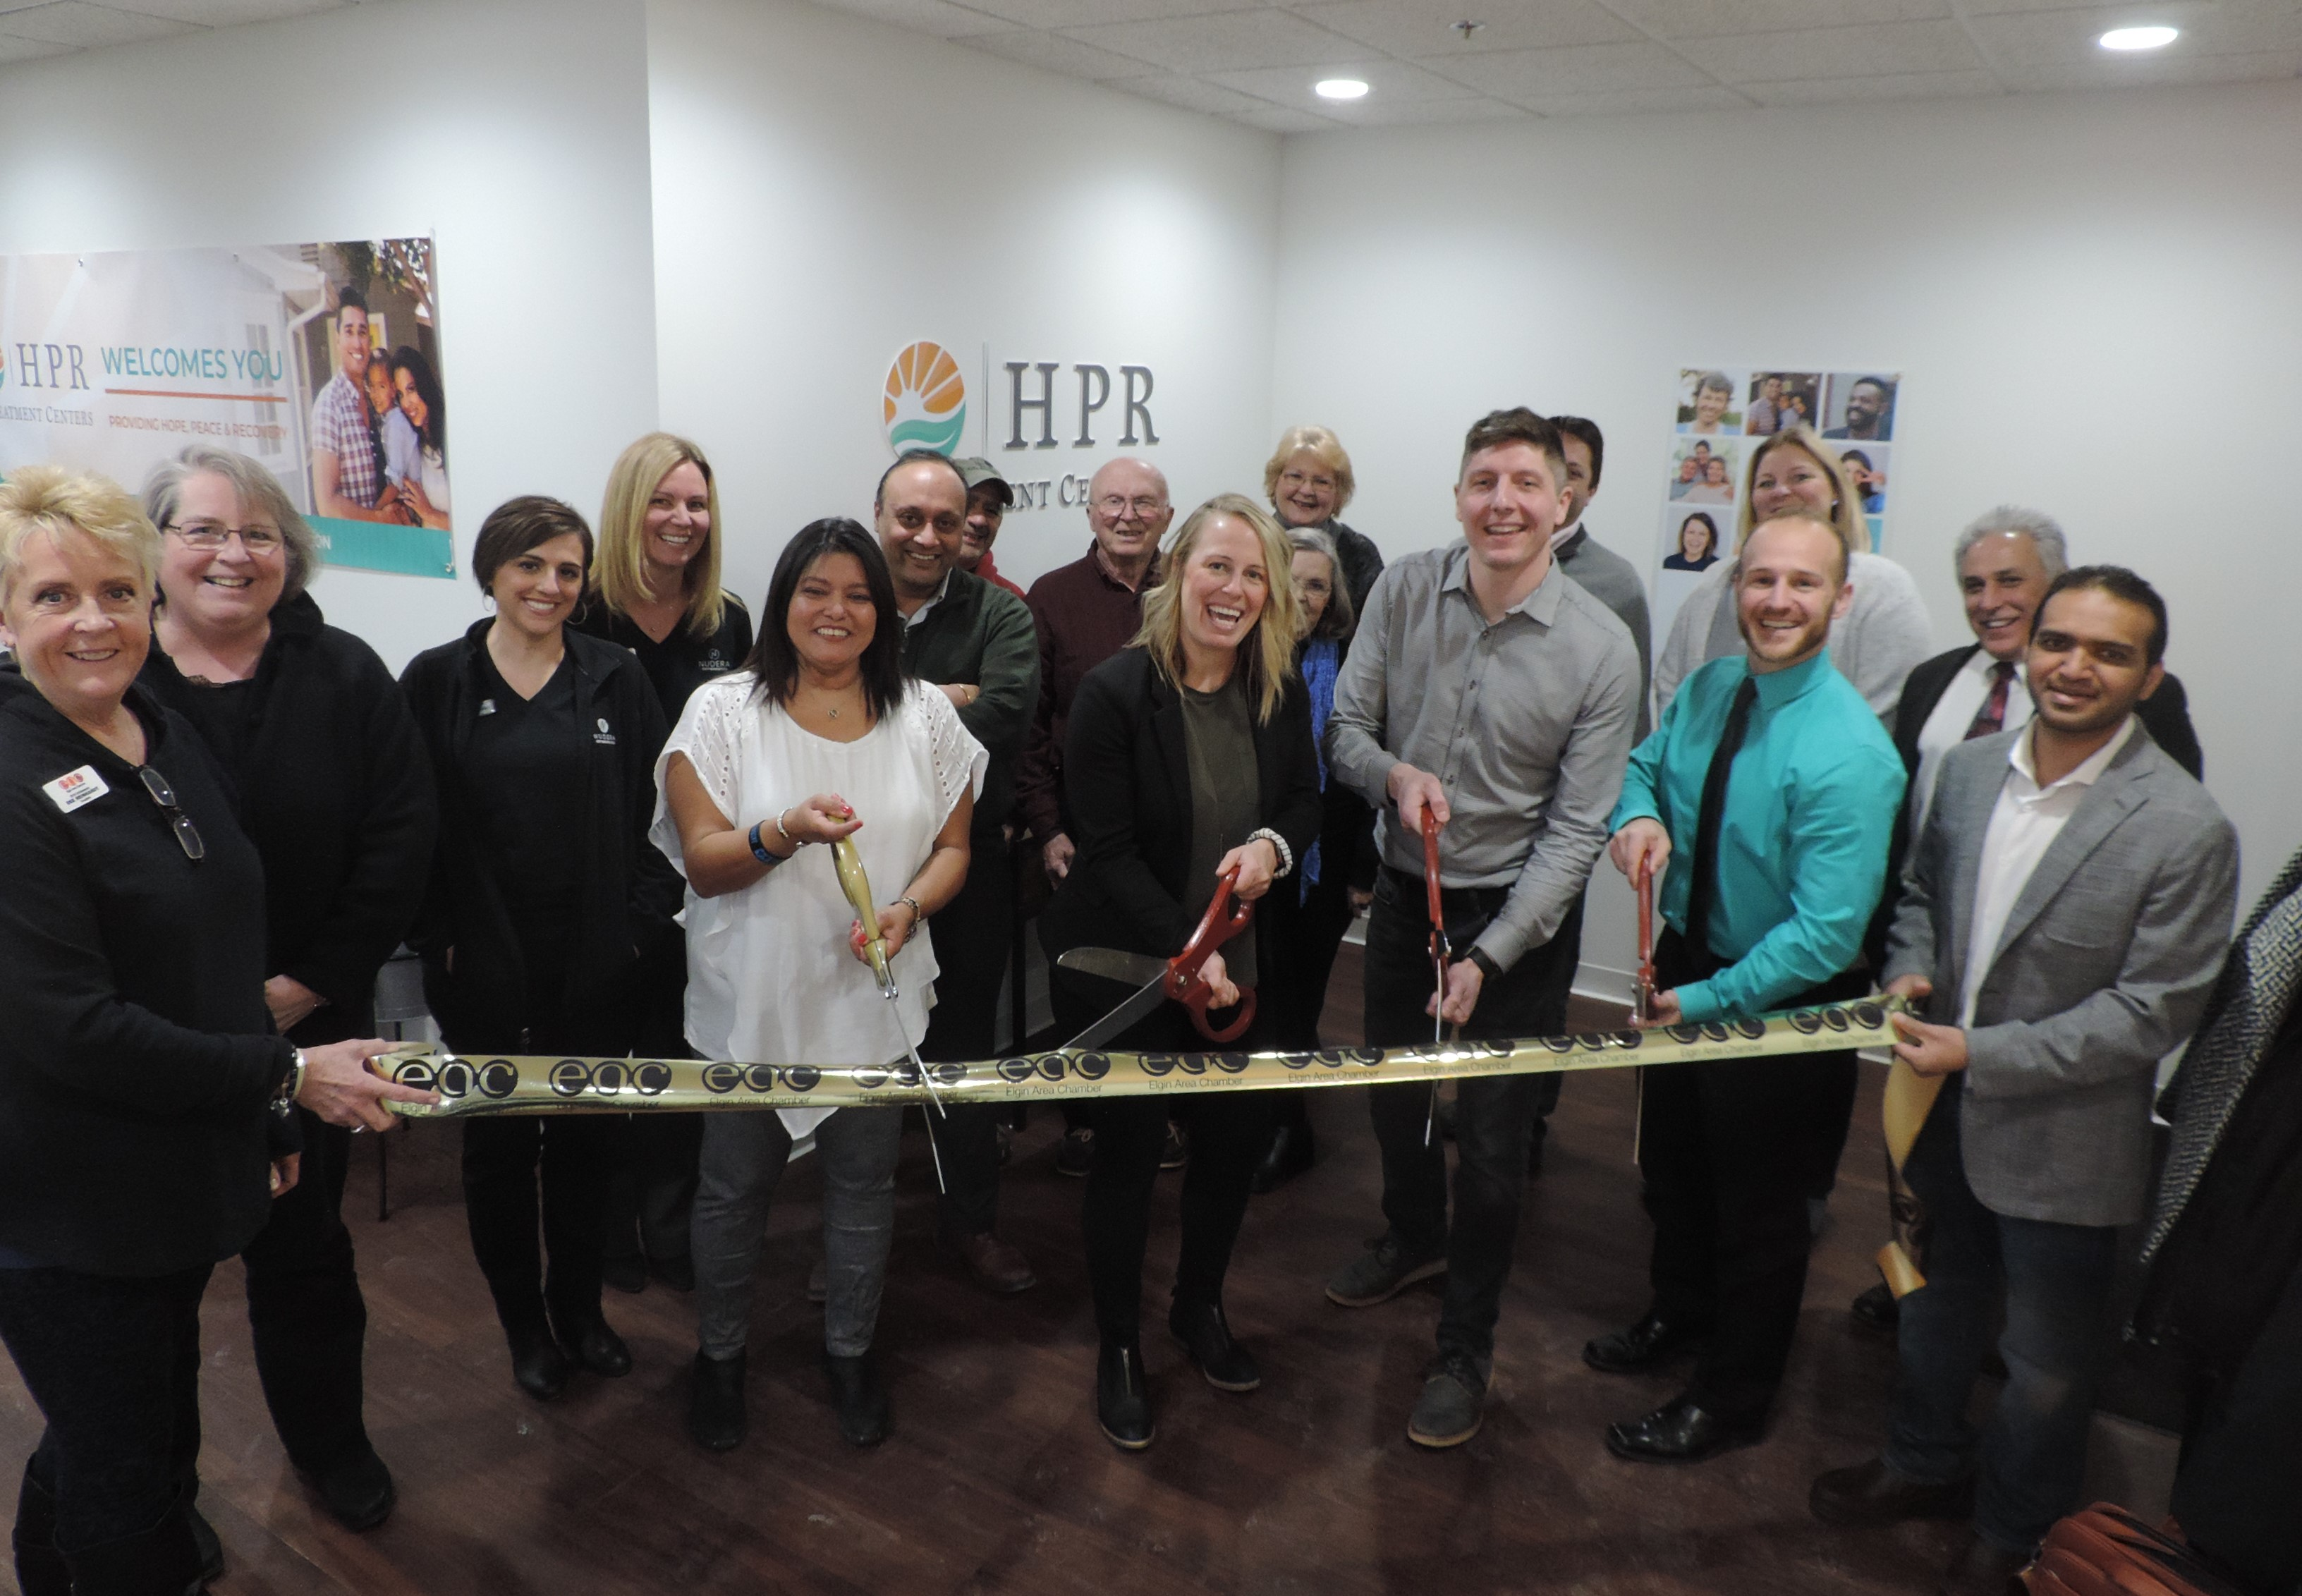 HPR-Ribbon-Cutting.JPG